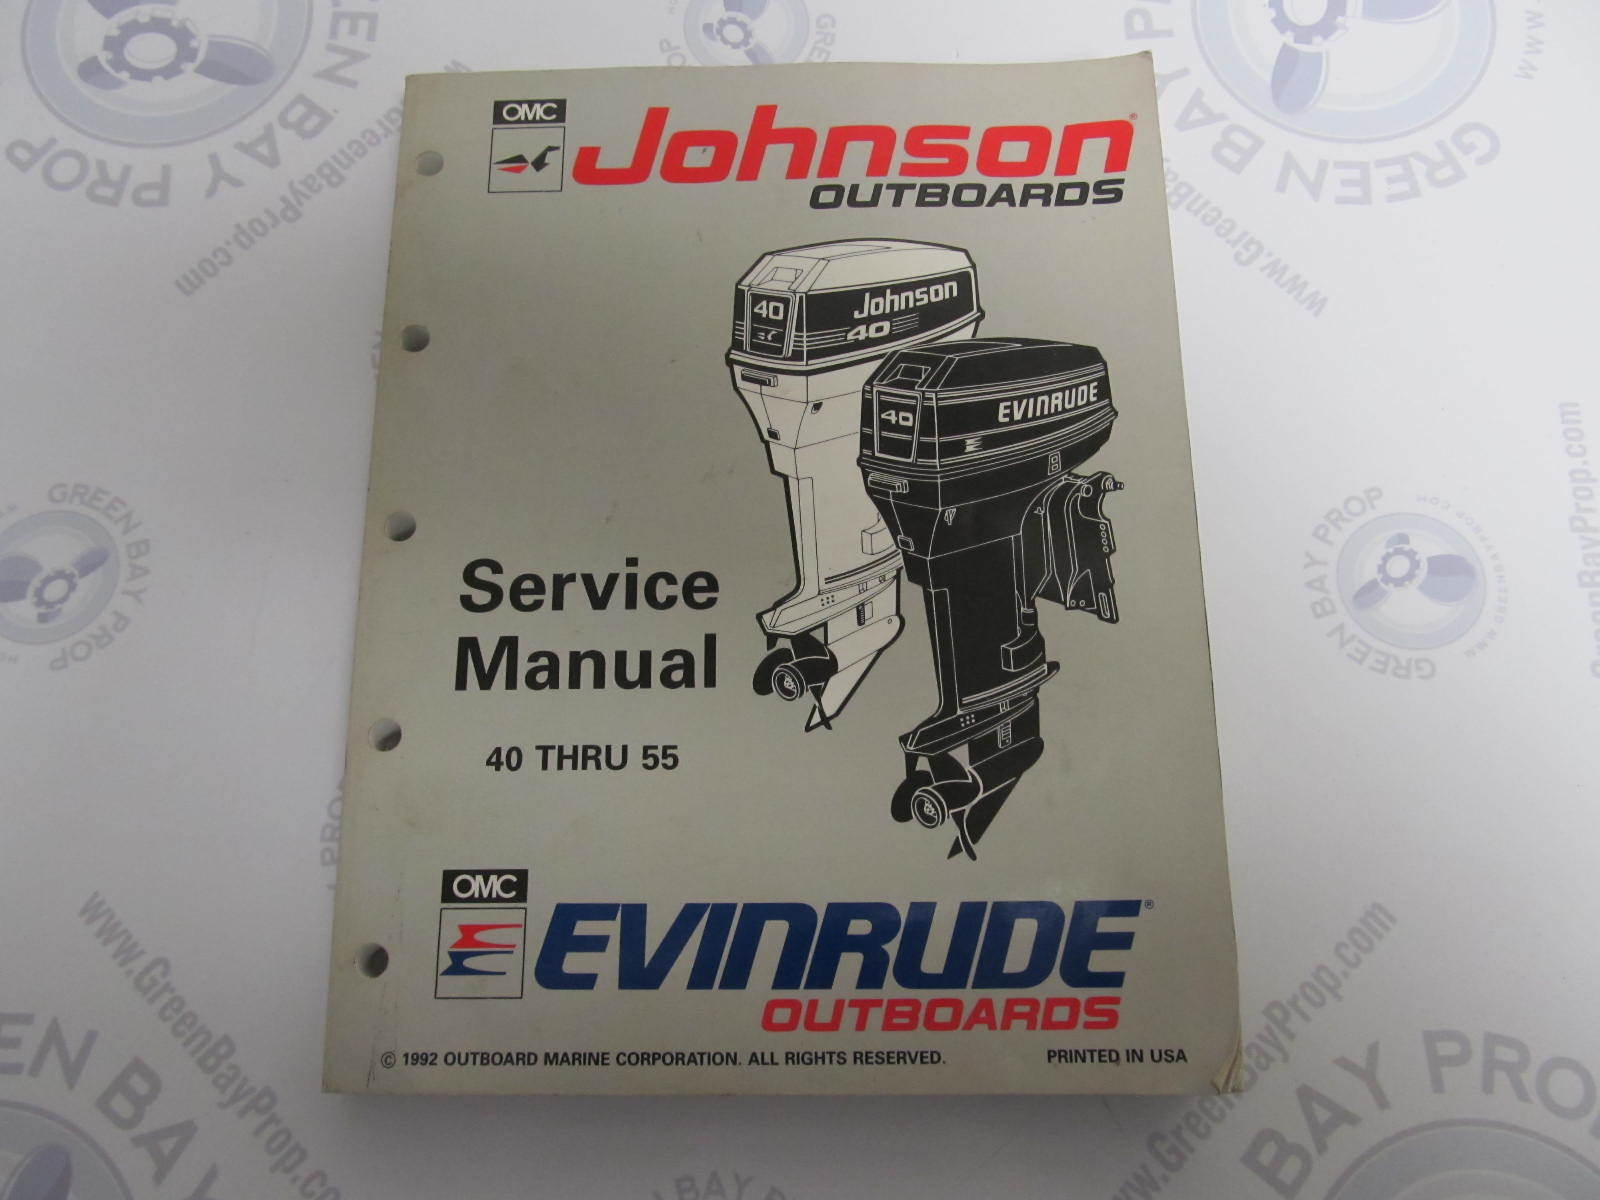 508283 evinrude johnson outboard service manual et 40 55 for Johnson outboard motor repair